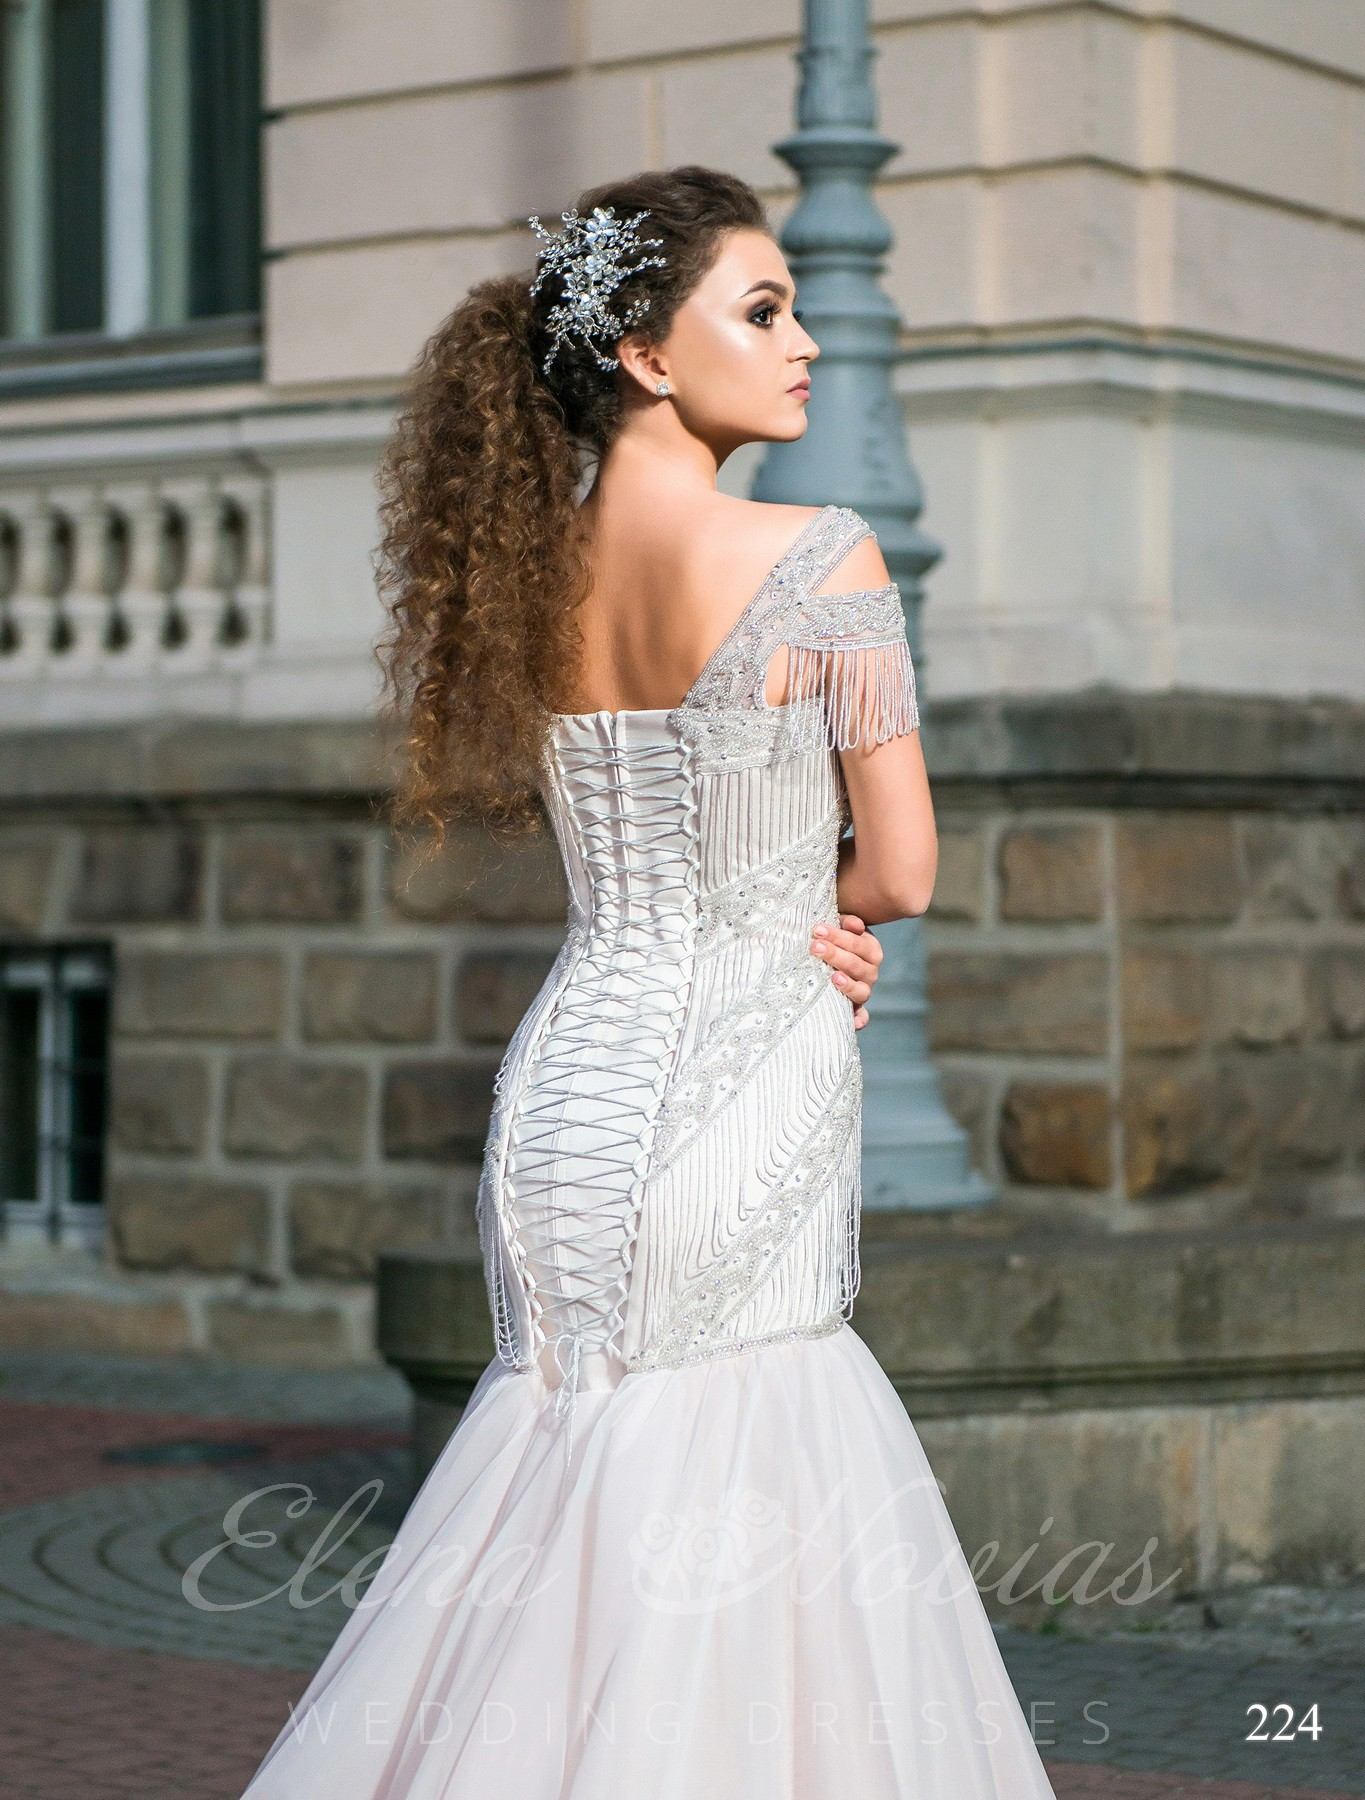 Fish silhouette wedding dress model 224